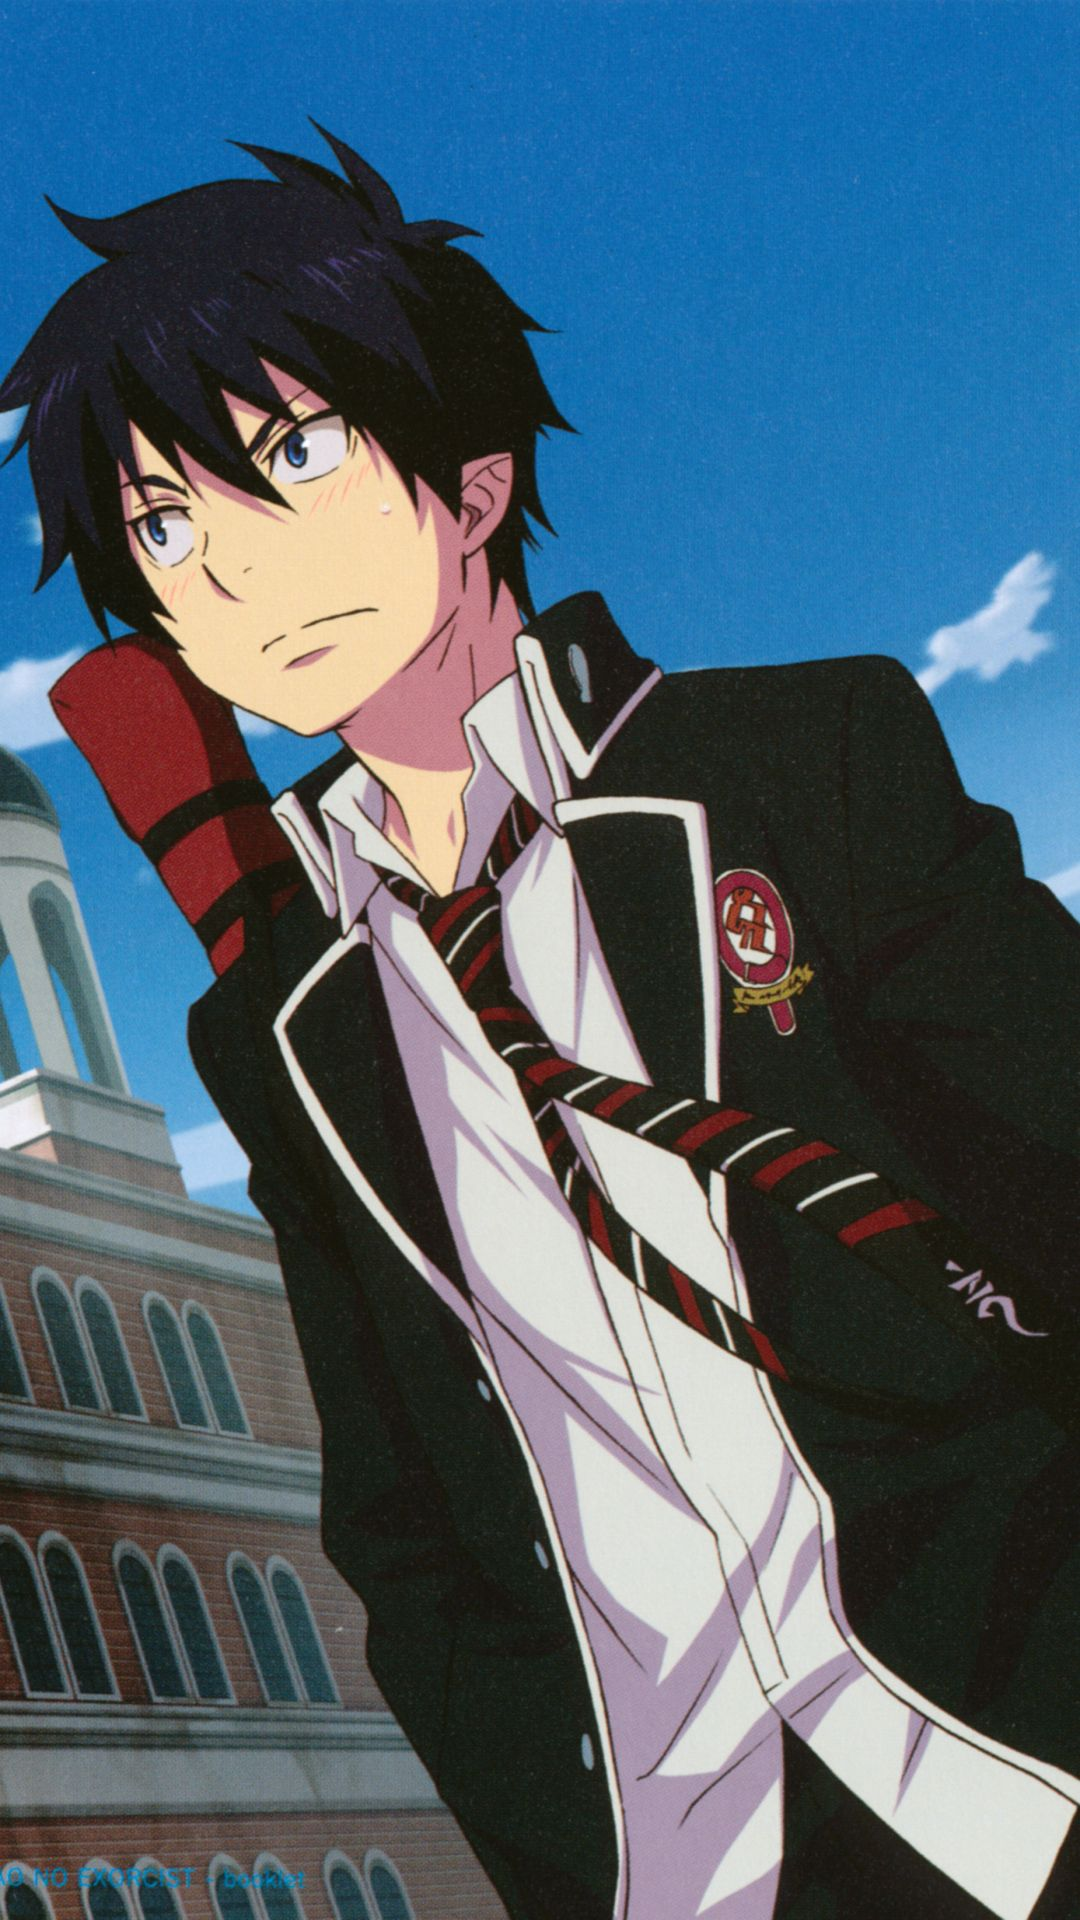 Pin By Retkro On Ao No Exorcist Blue Exorcist Blue Exorcist Rin Ao No Exorcist